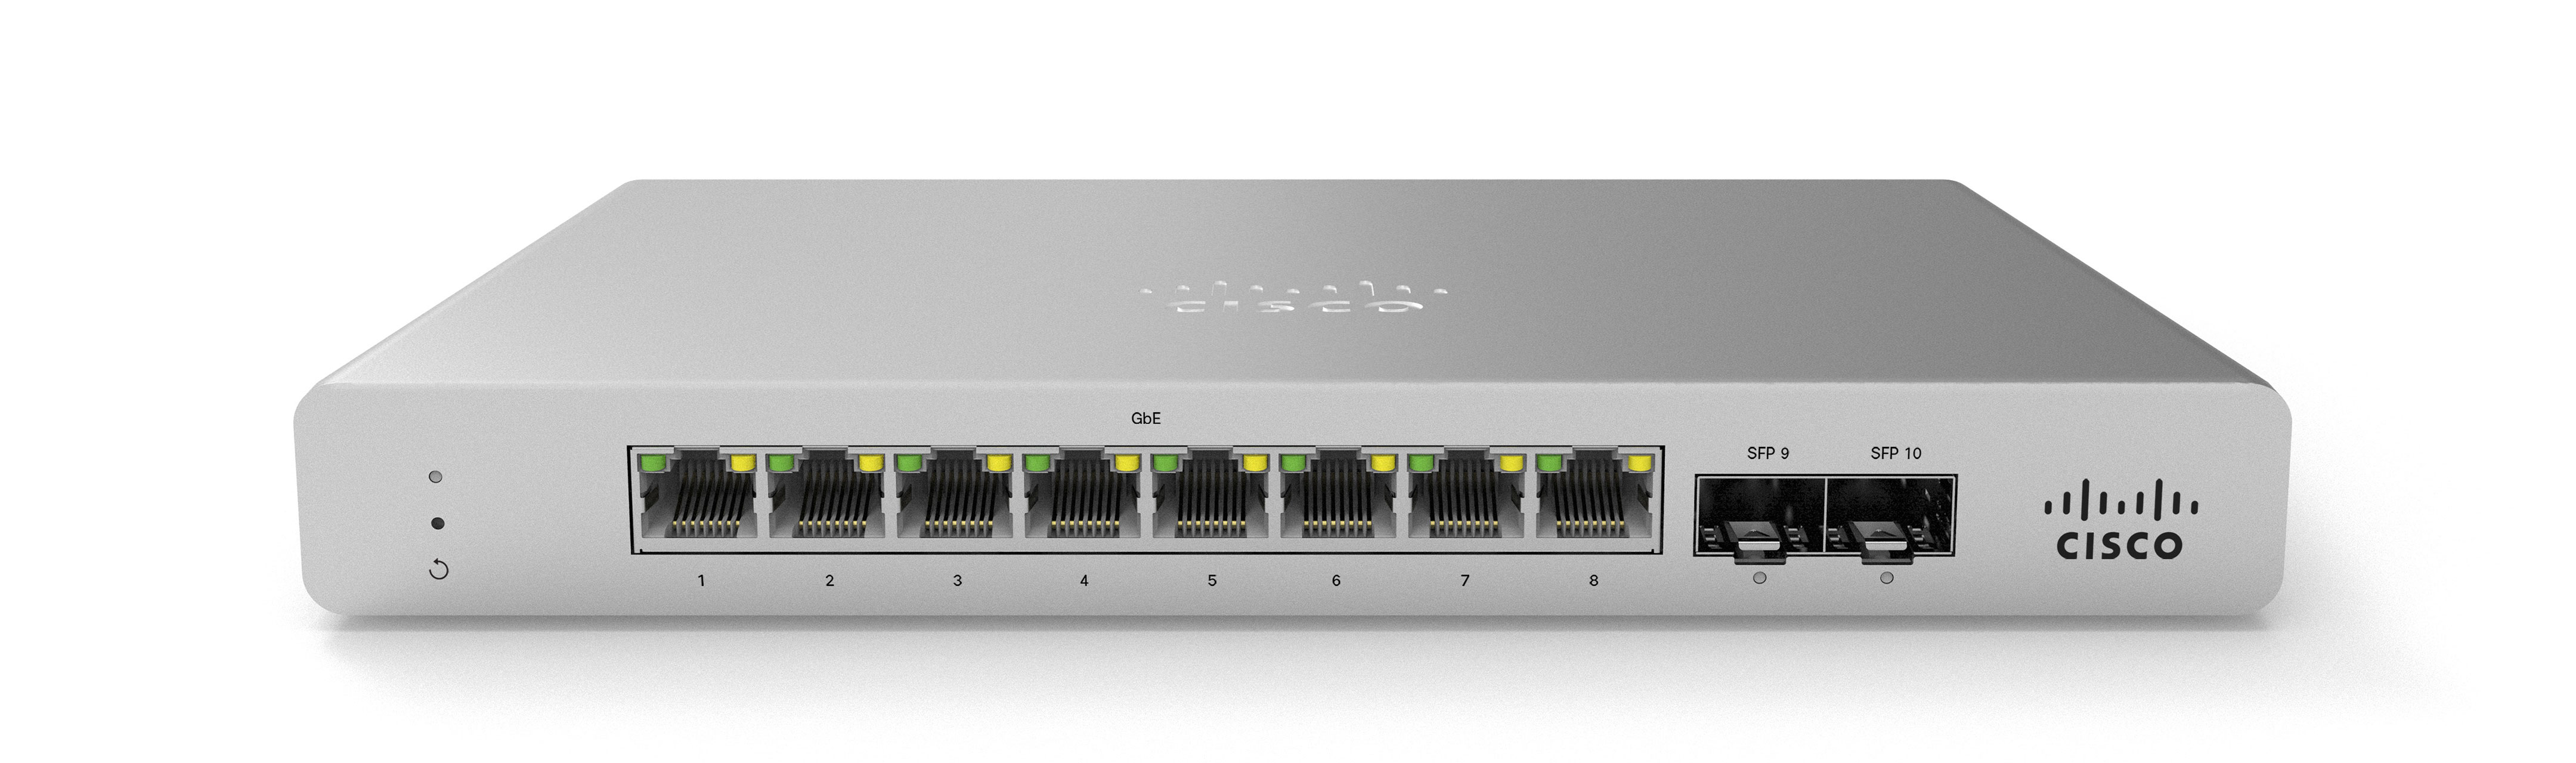 Switch clipart switch cisco. Meraki cloud managed networks